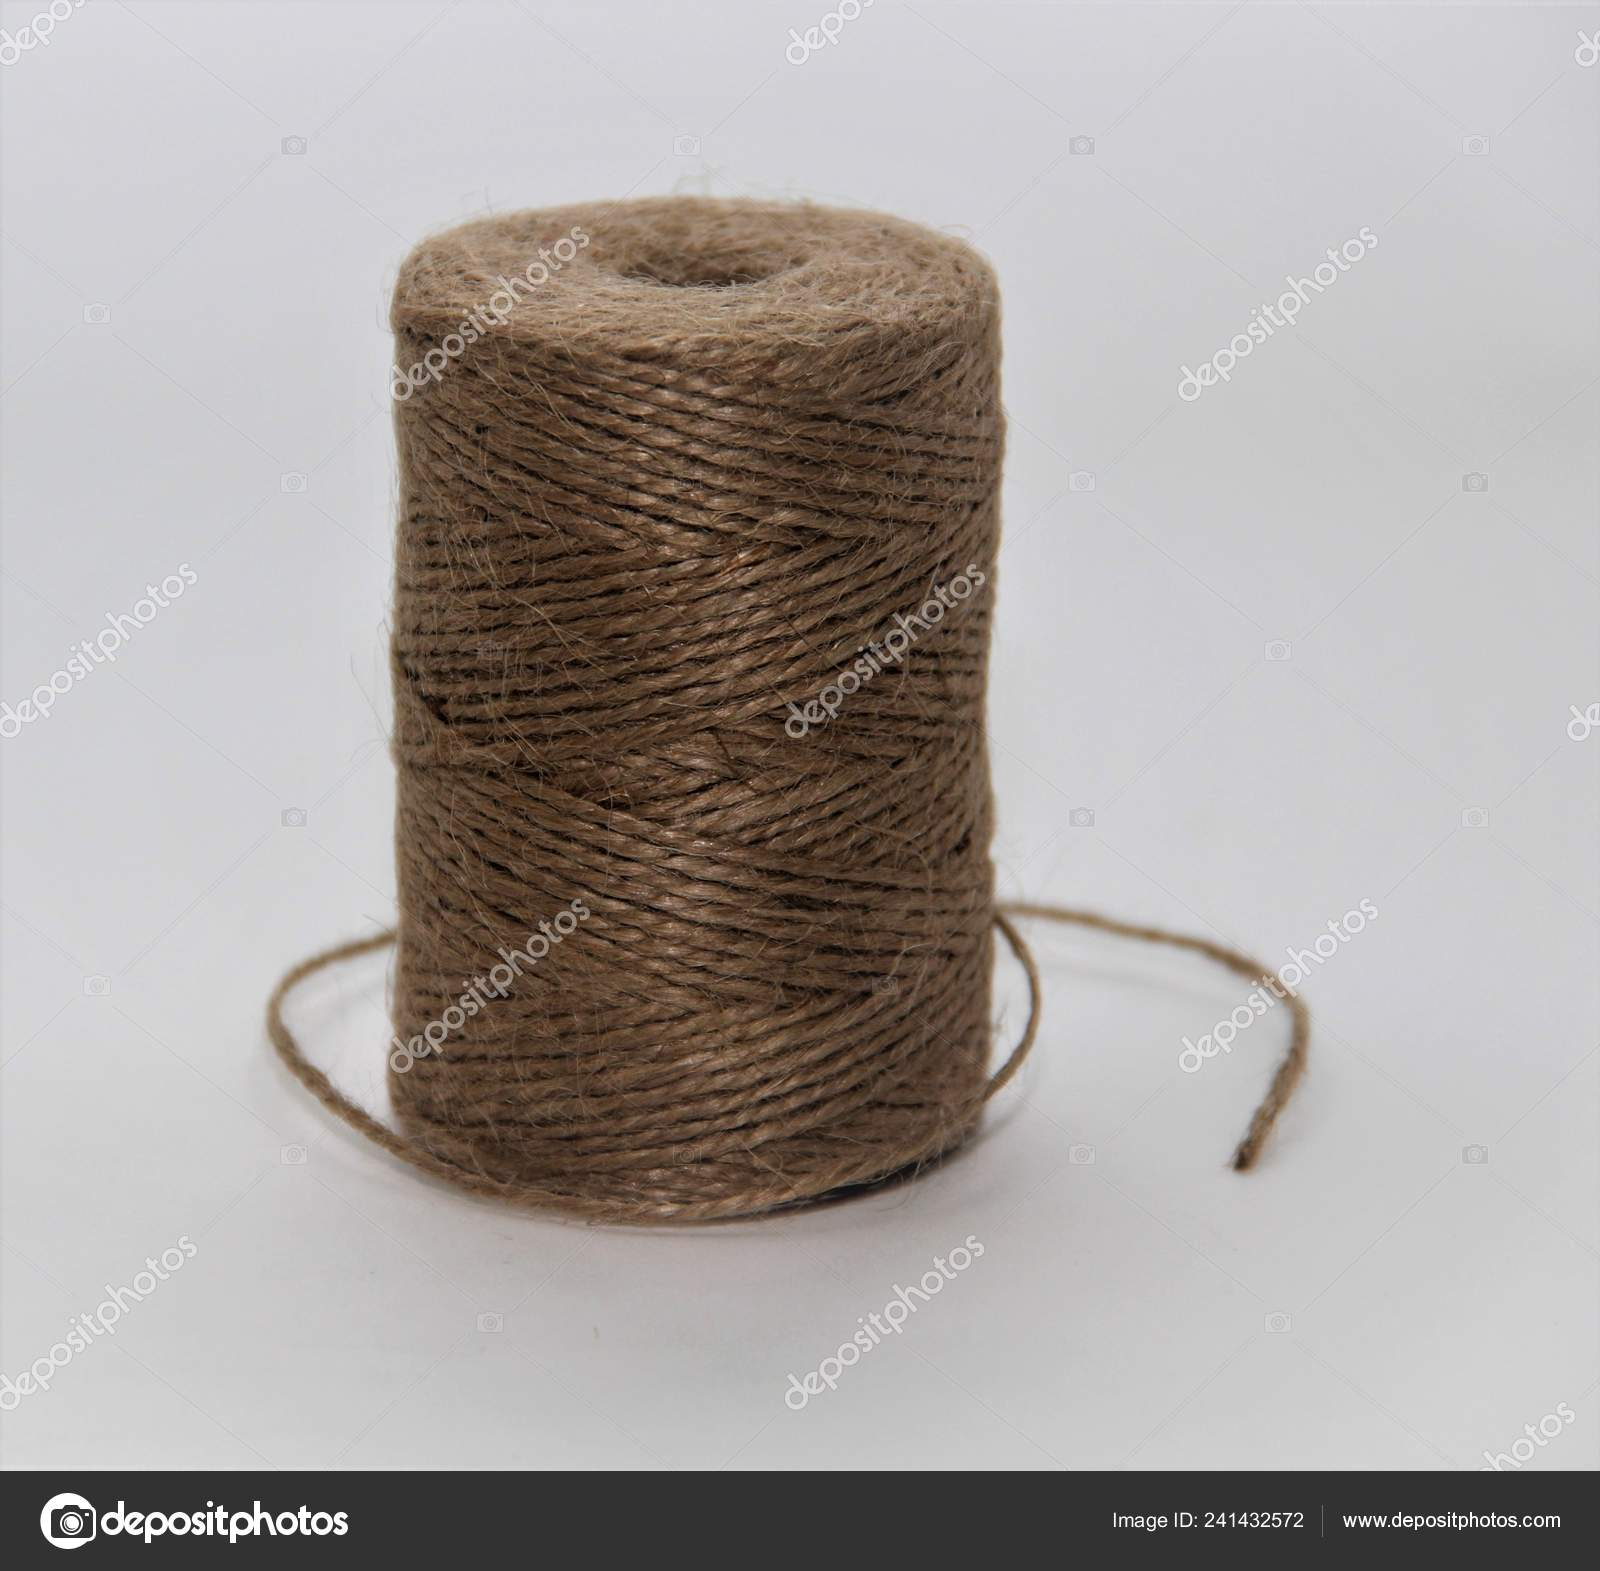 Decorative Jute Rope White Background — Stock Photo